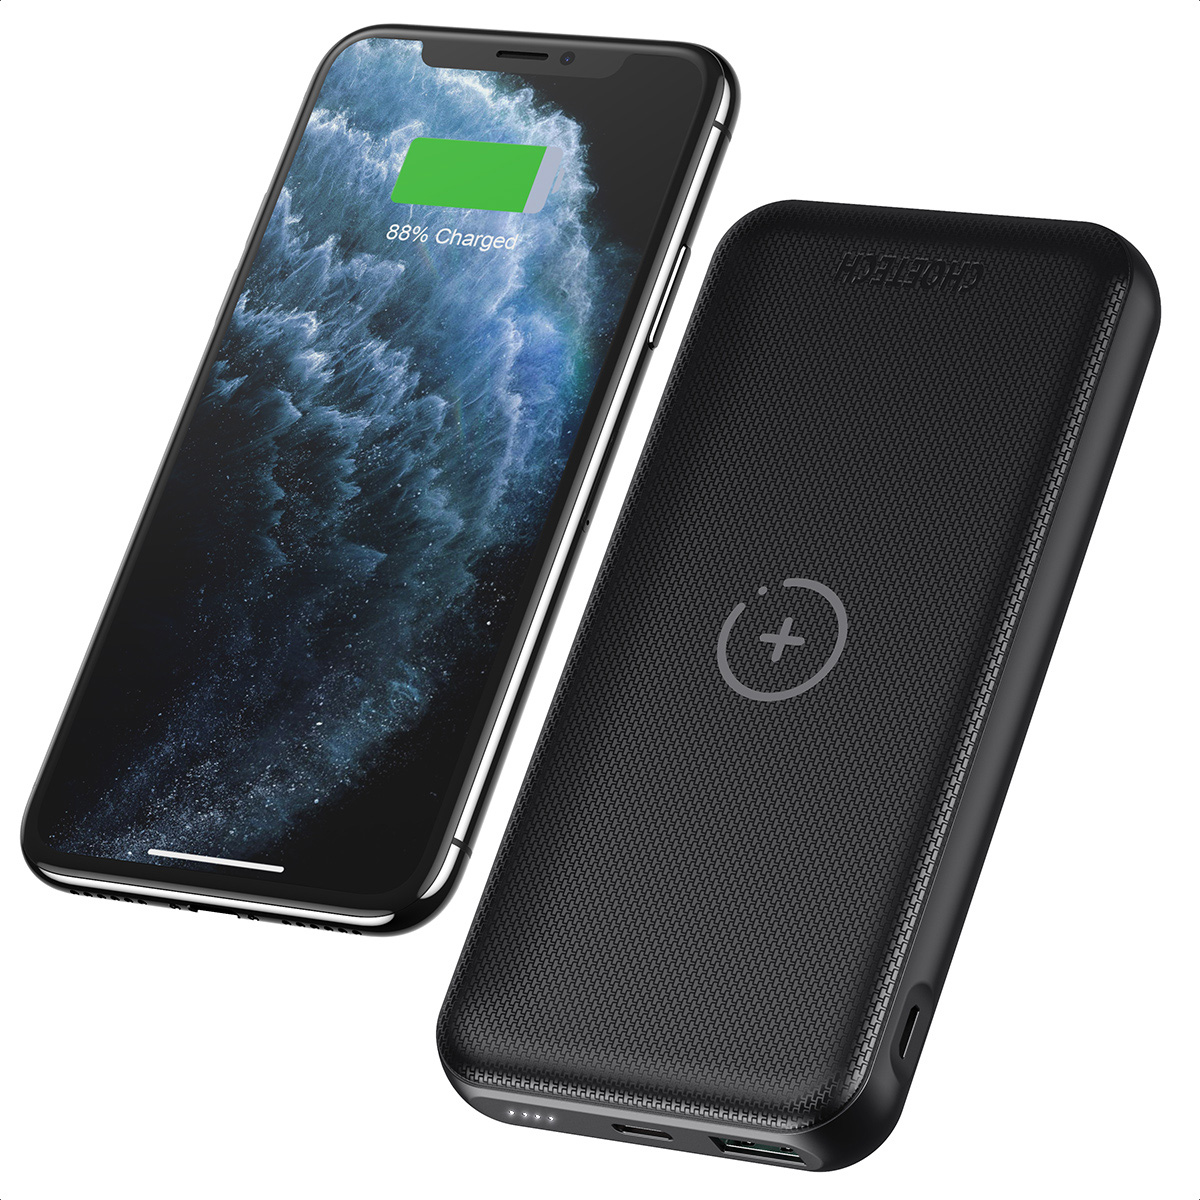 [US Direct] CHOETECH Wireless Power Bank Qi Portable Charger for iPhone 12 Pro Max 10000mAh External Battery QC 3.0 18W USB C PD Fast Charger for iPhone 11 XR Xs SE 8 AirPods Samsung S21 S20 Note 20 10 9 A72 A71 10*2*16